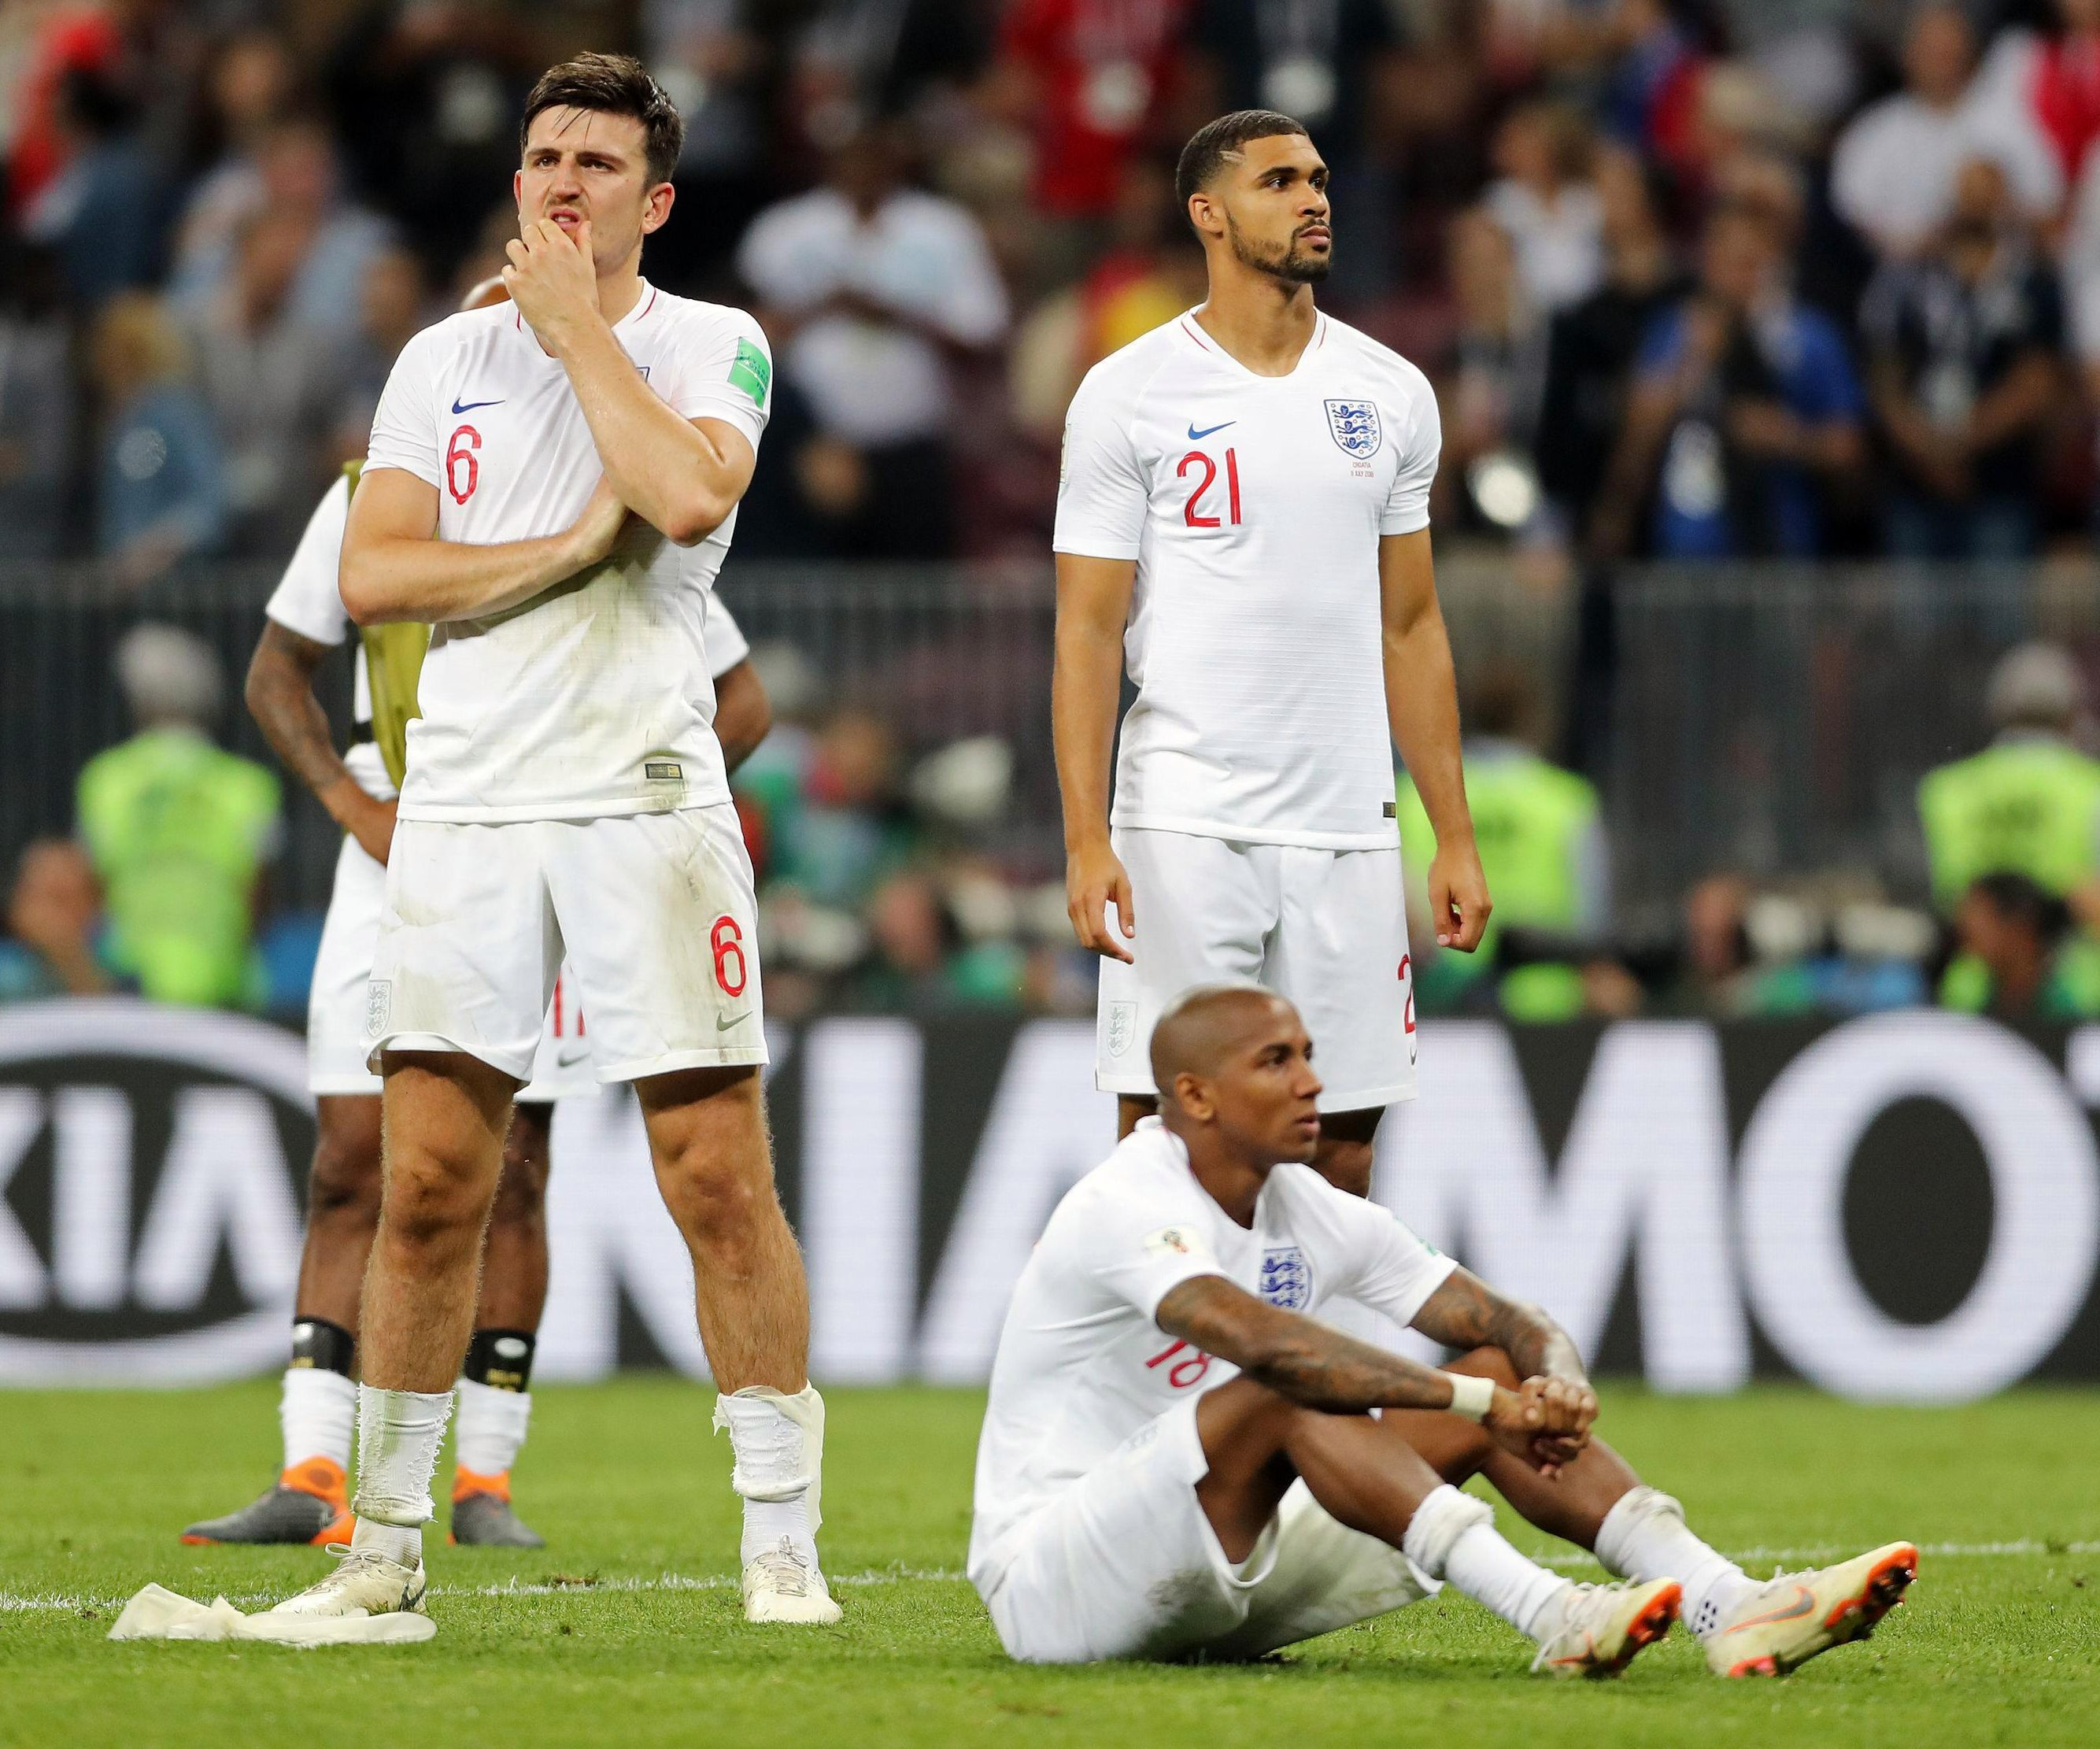 The Frenchman reminded his title rival of England's defeat in the World Cup